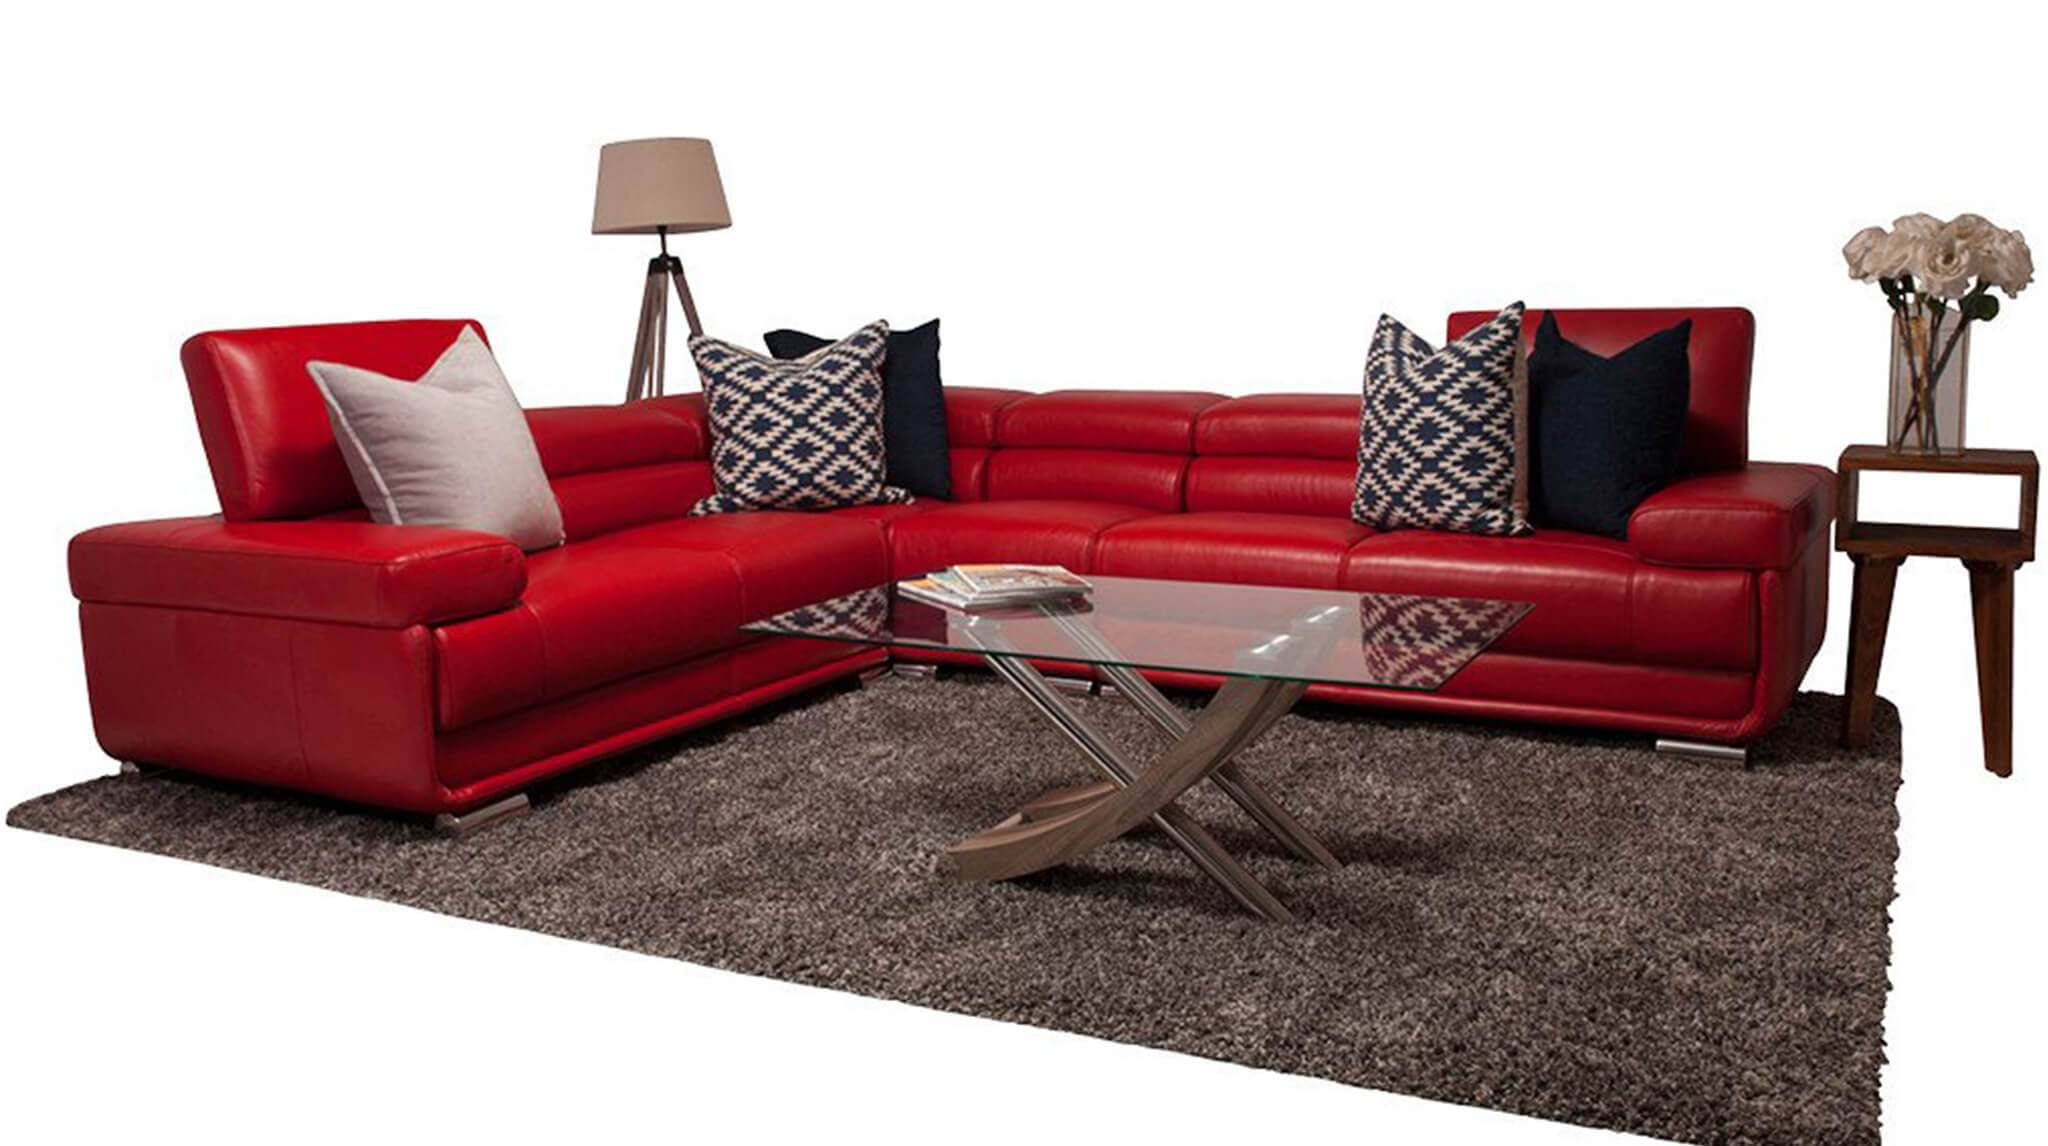 San Miguel Leather Corner Couch | Sectional | Red-SM | Couches For Sale | Leather Gallery Couches